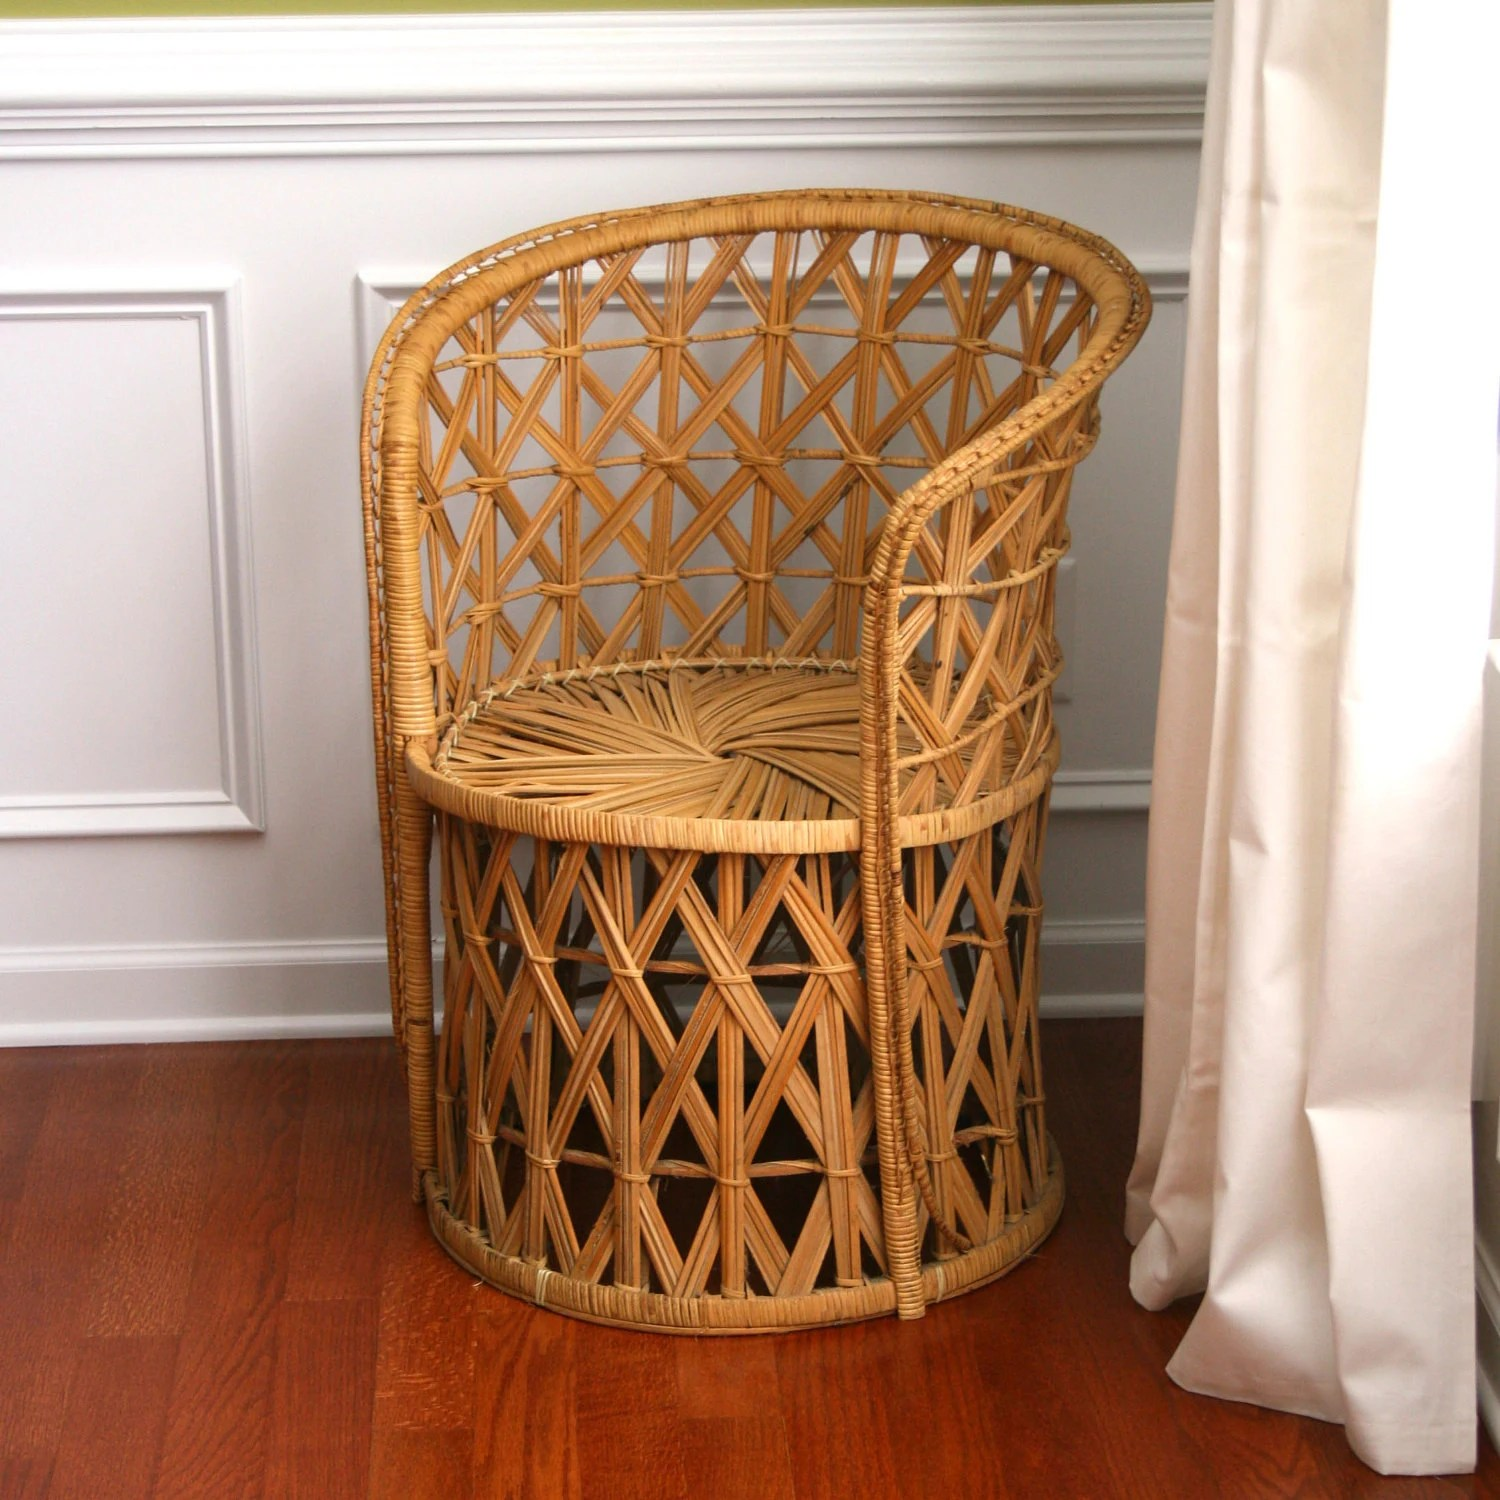 Antique Wicker Chairs Vintage Rattan Chair Reserved Fall Autumn Home Decor